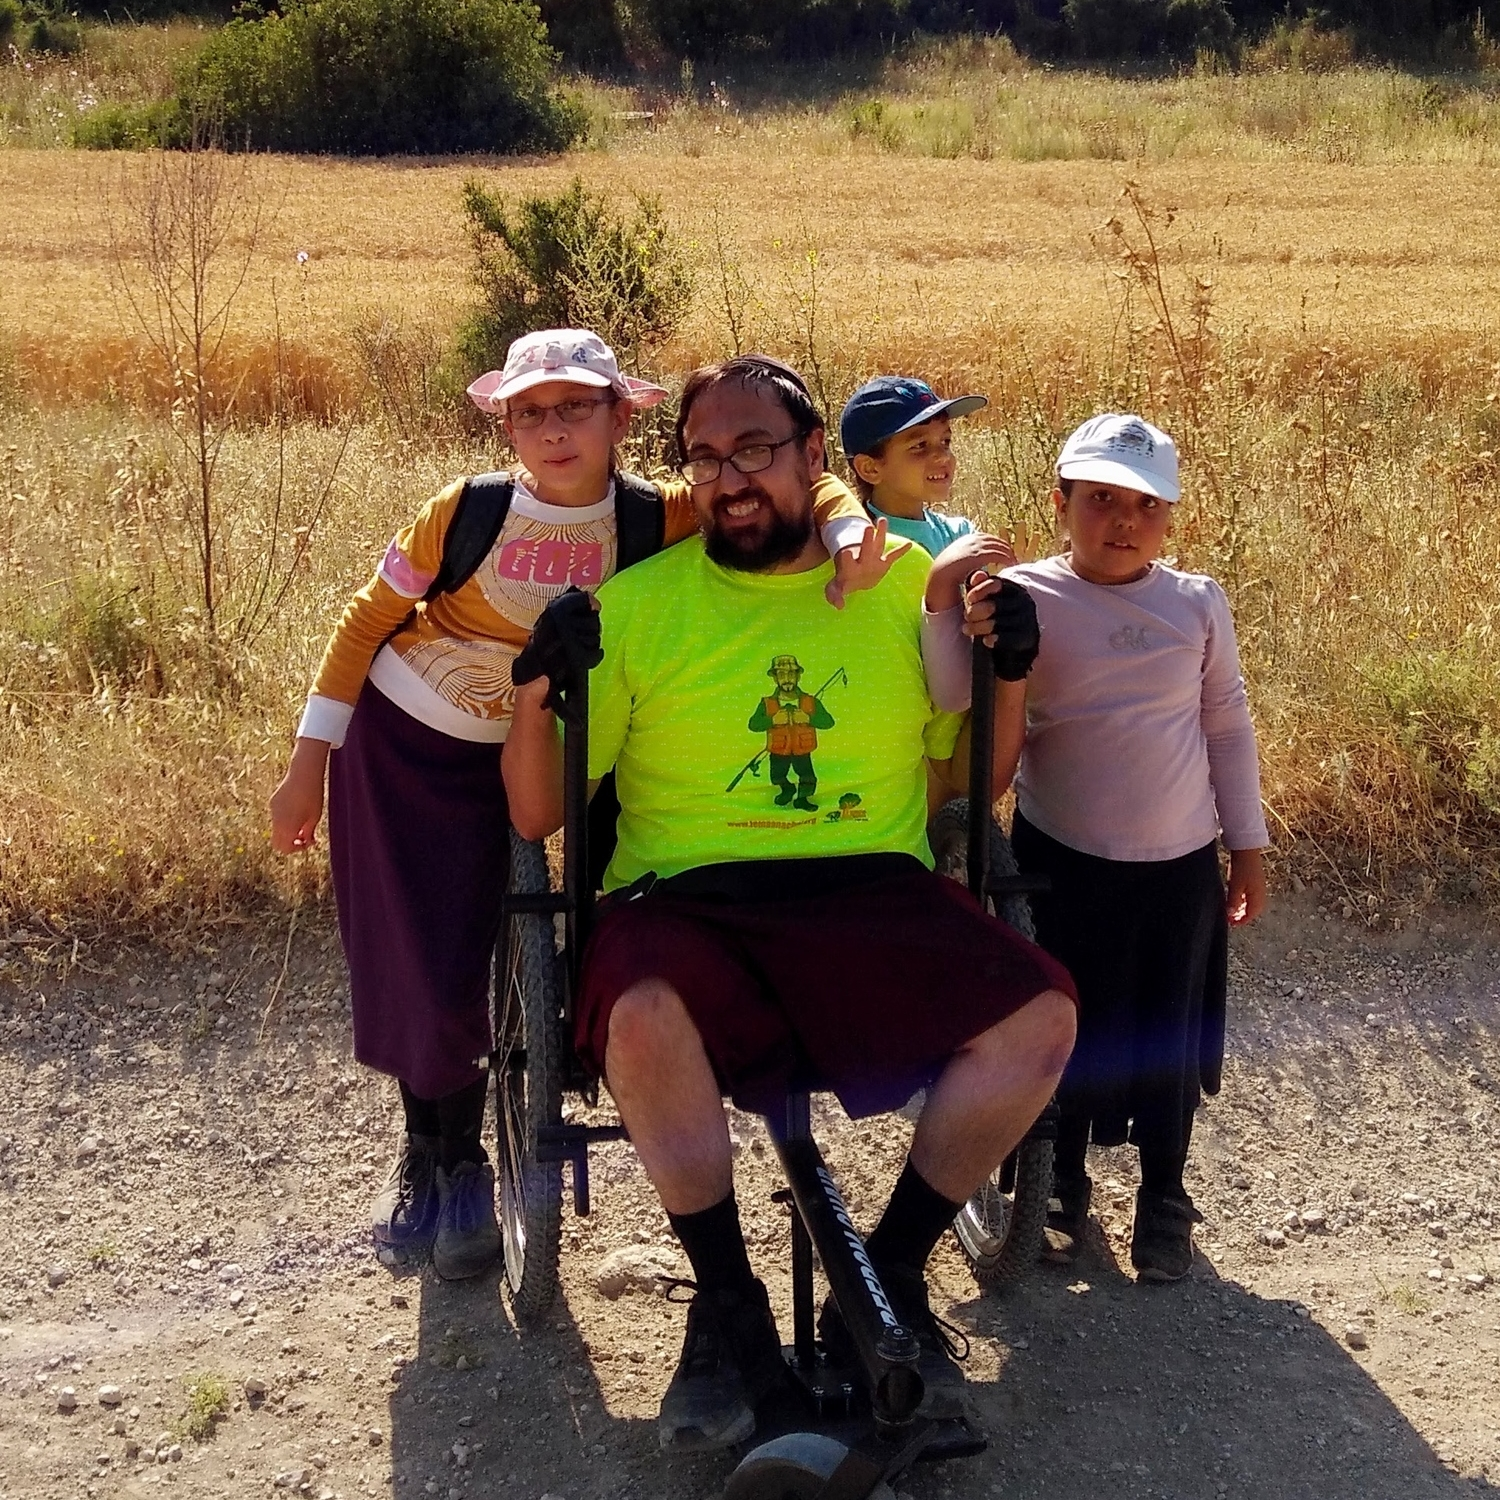 When word of this chair got around, I became a local celebrity. I've already done some hikes with people who happened to hear about the chair. I've made new friends, joined a hiking club, and been more active than I have in years.    —Ilan